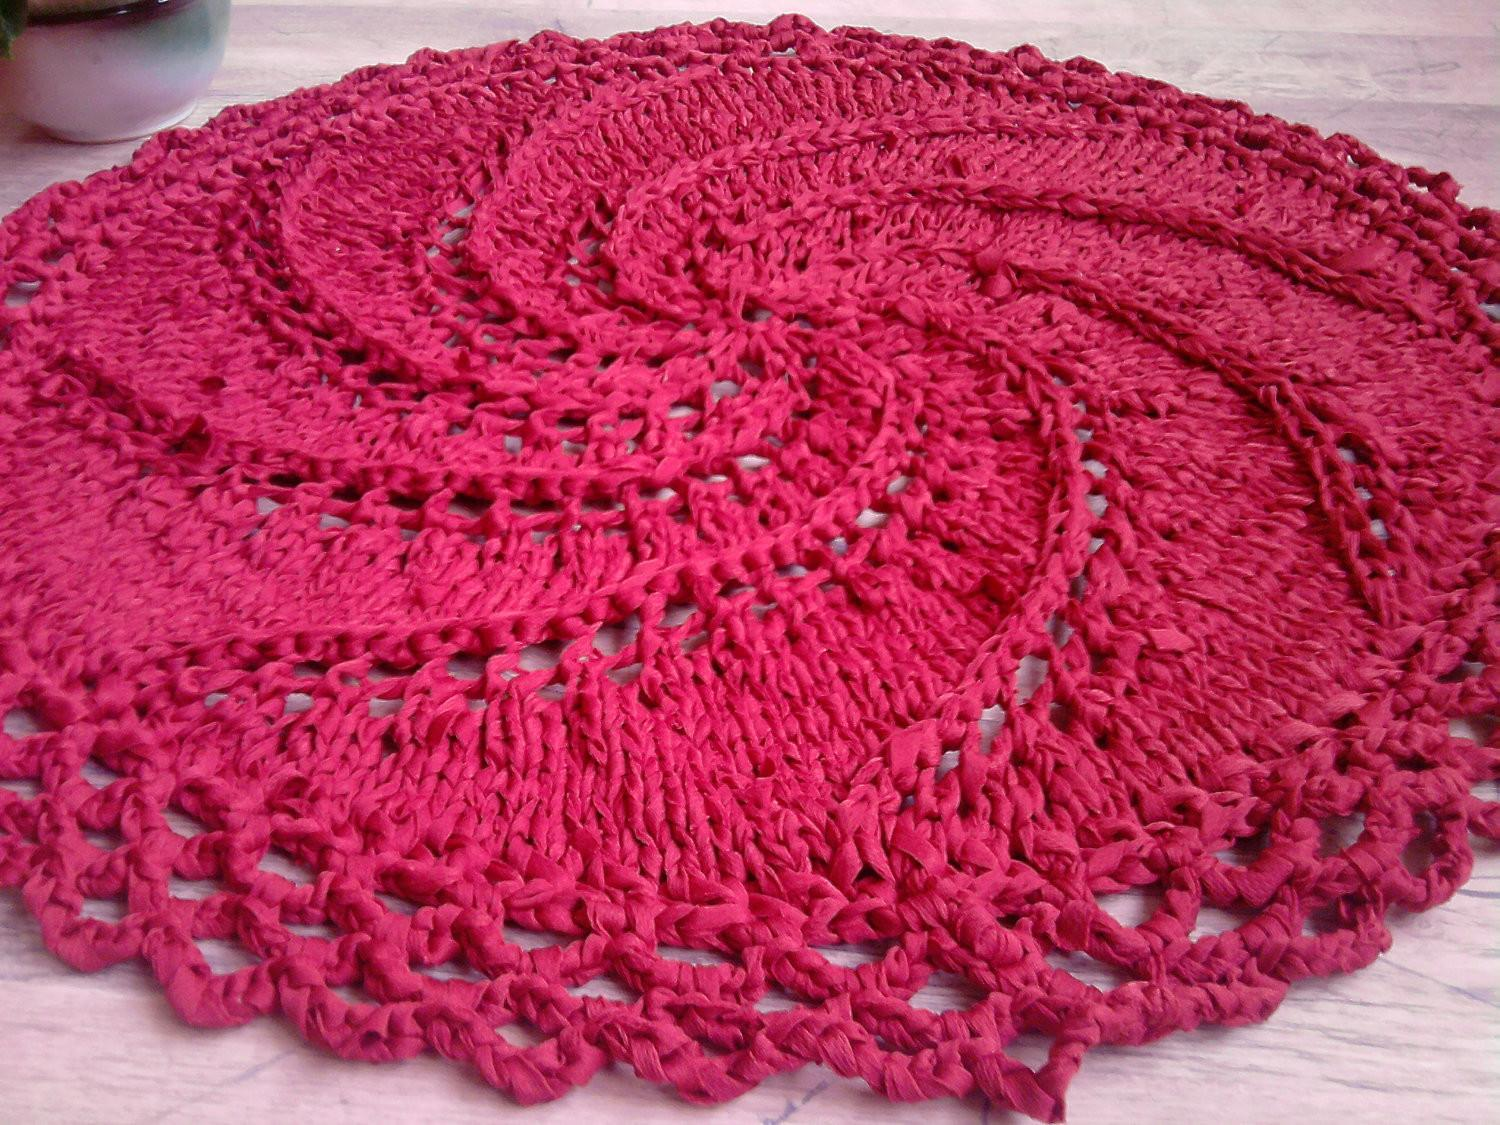 Hand Knitted Red Rag Rug Spiral Crochet Edge